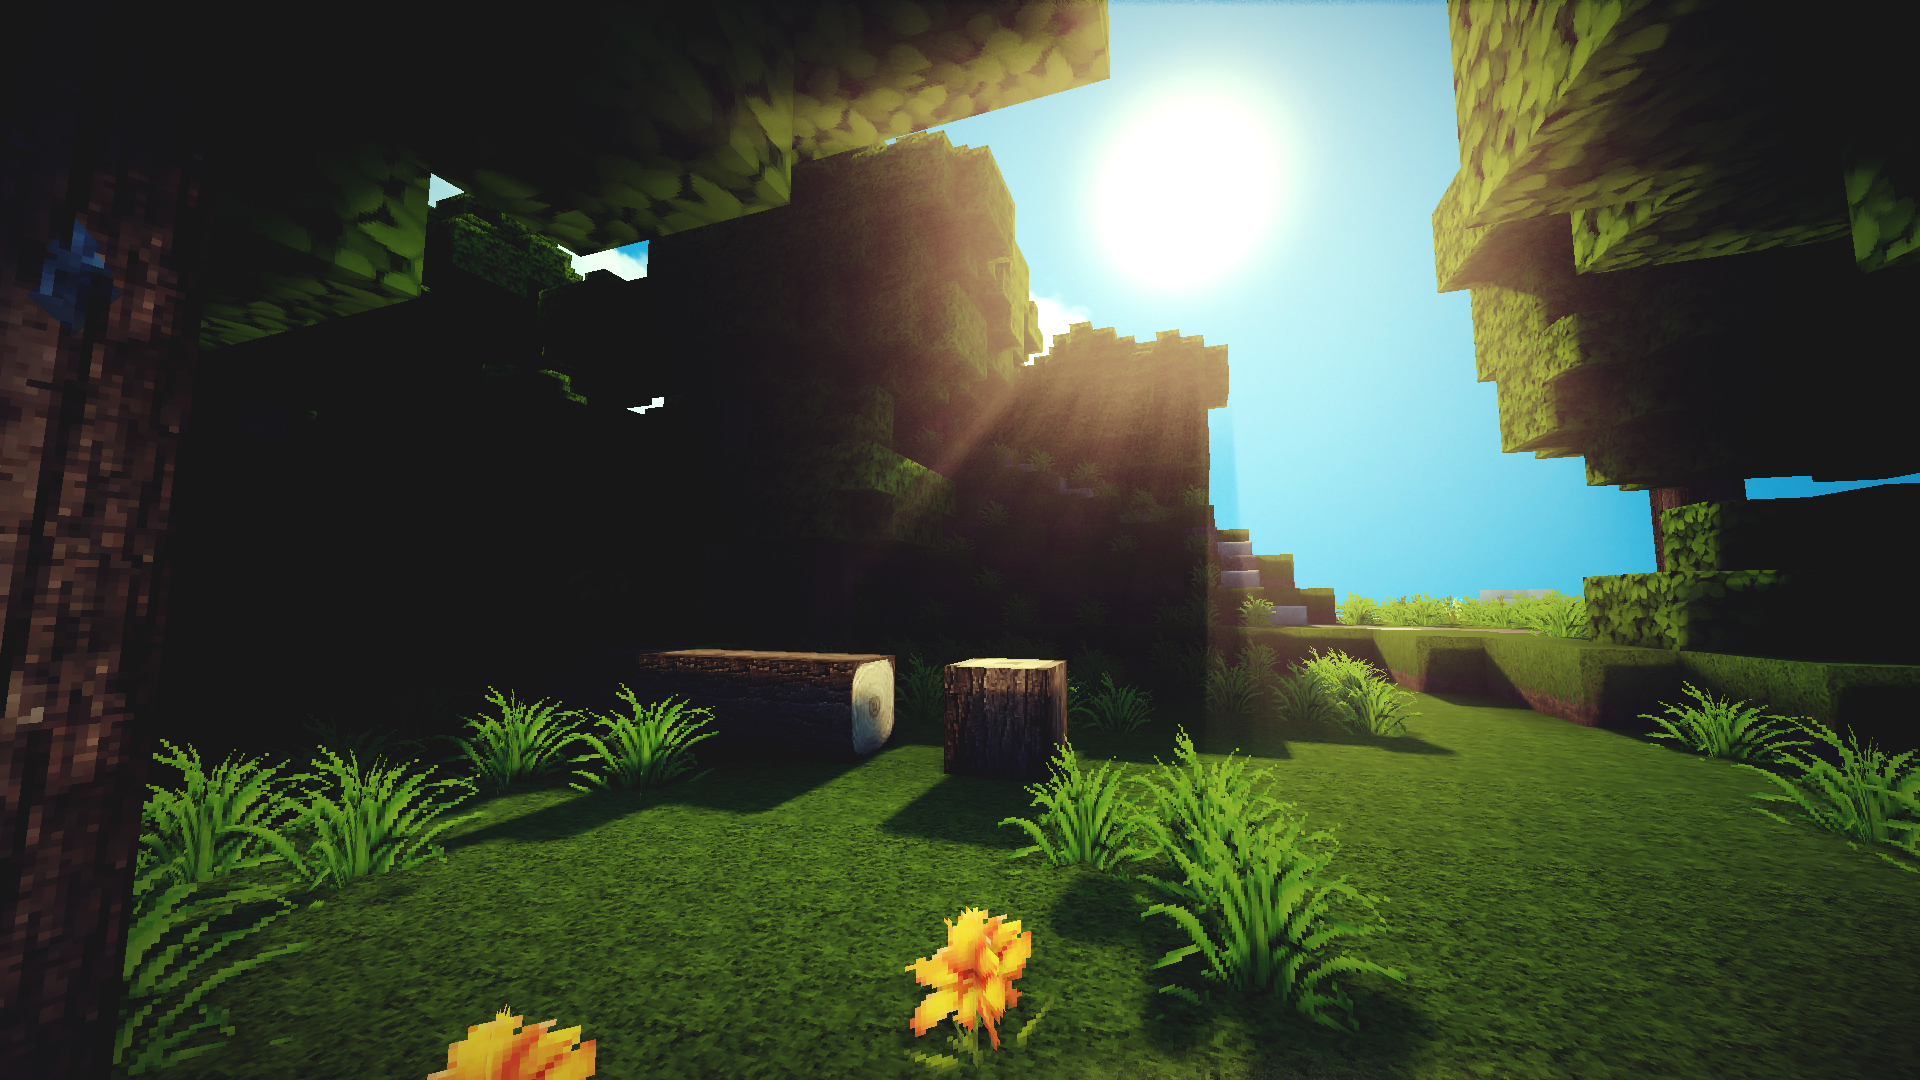 HD Wallpapers of Minecraft 30 Background Pictures 1920x1080